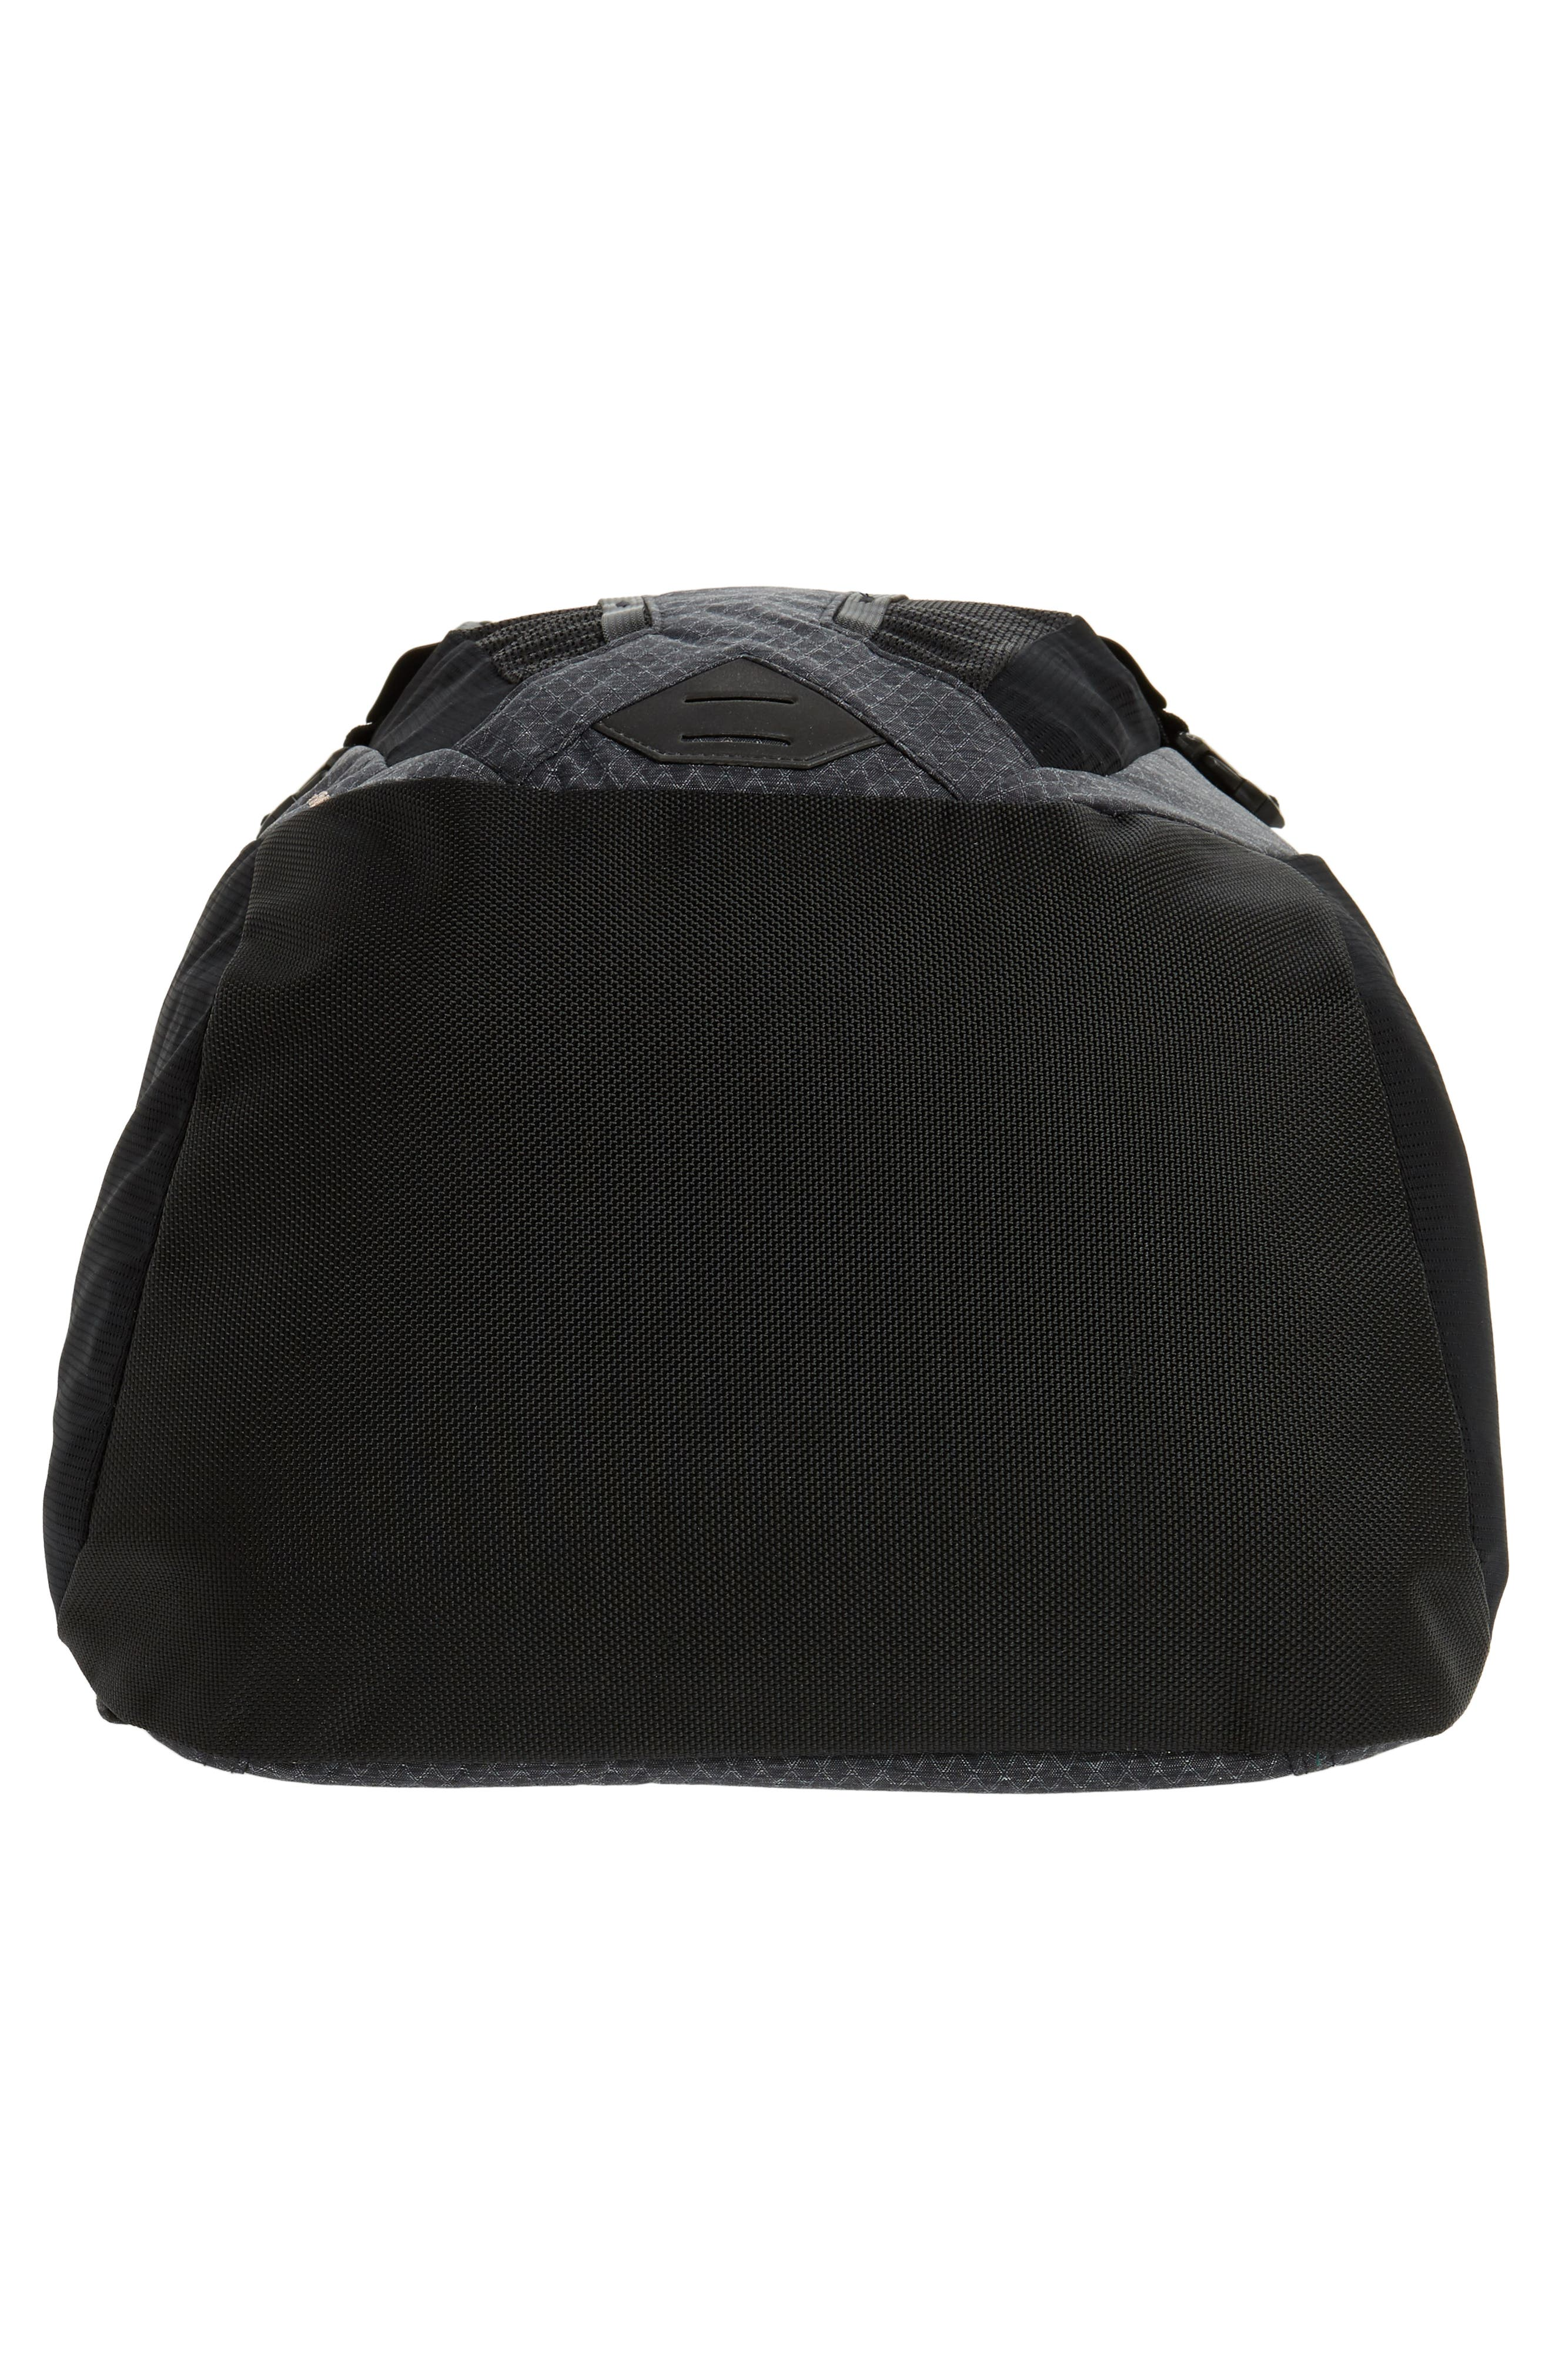 THE NORTH FACE, 'Recon' Backpack, Alternate thumbnail 7, color, 005